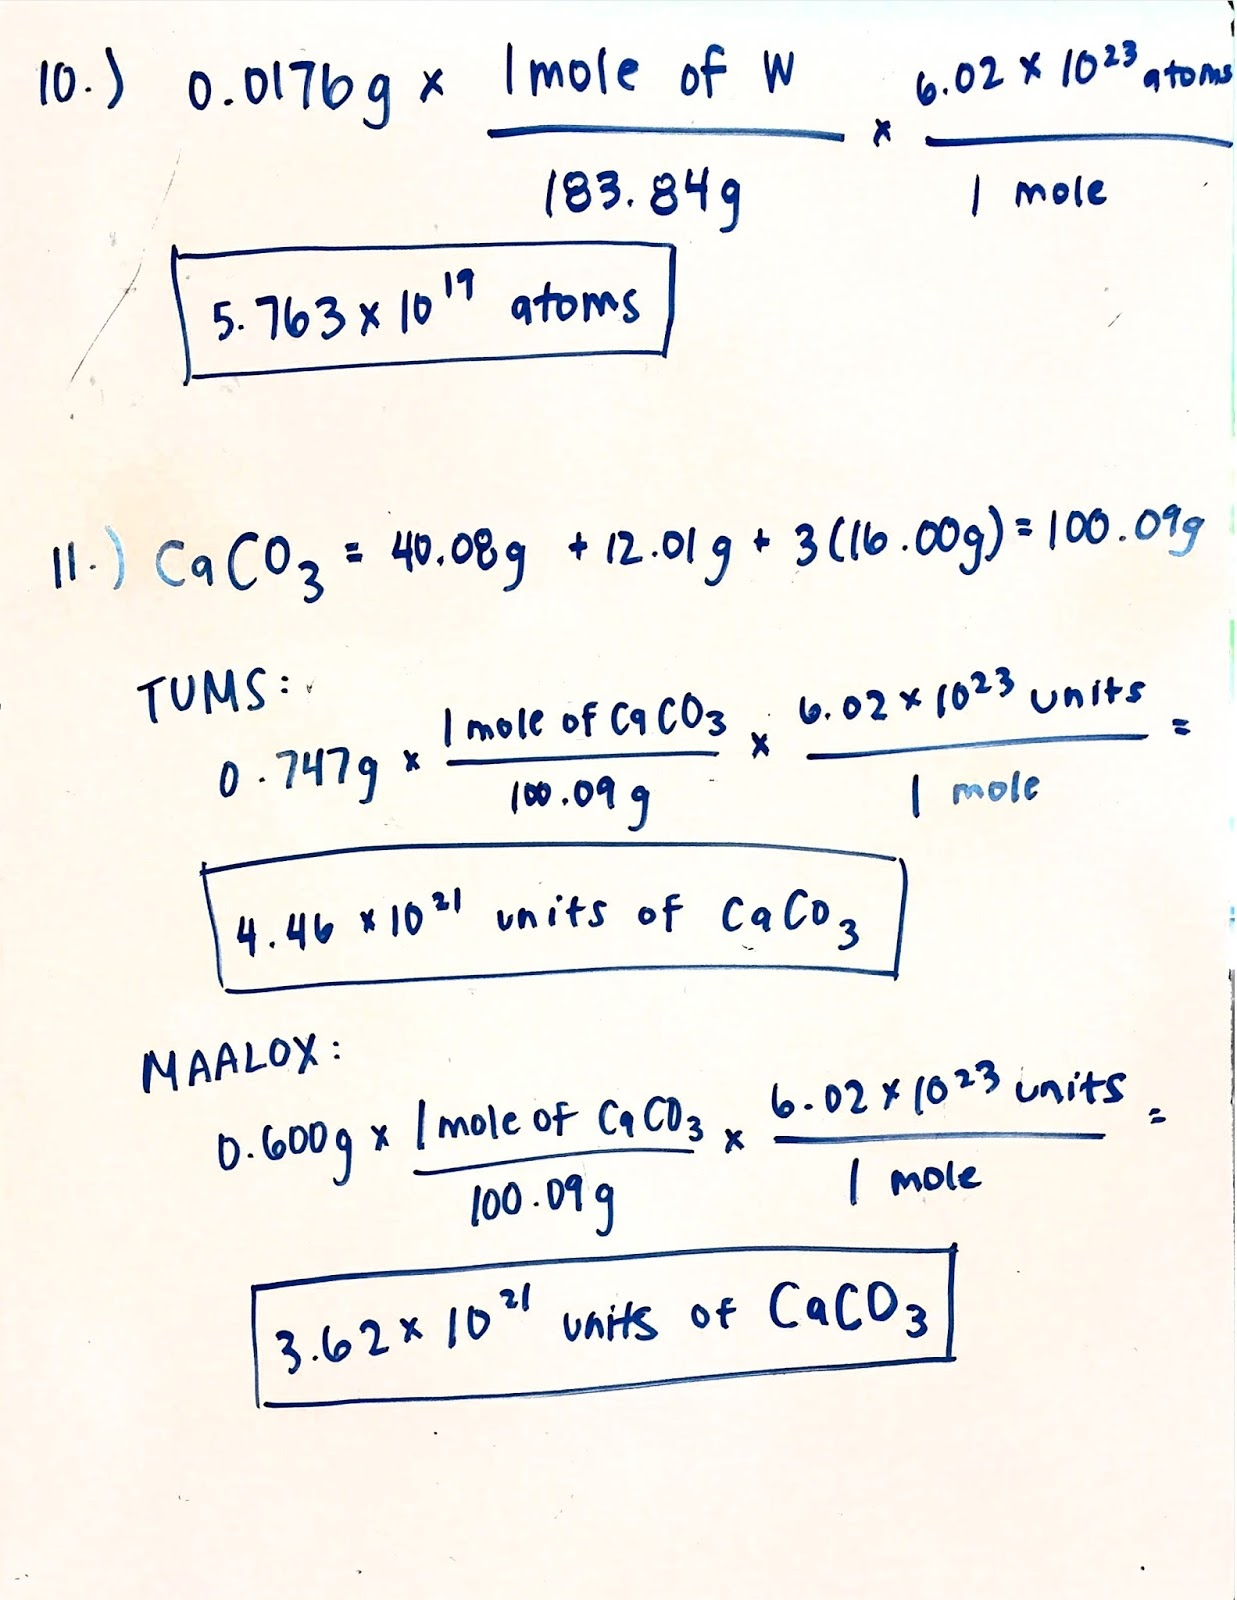 Worksheets Chemistry Unit 5 Worksheet 2 Answers chemistry unit 5 worksheet 2 fallcreekonline org answer key free worksheets library